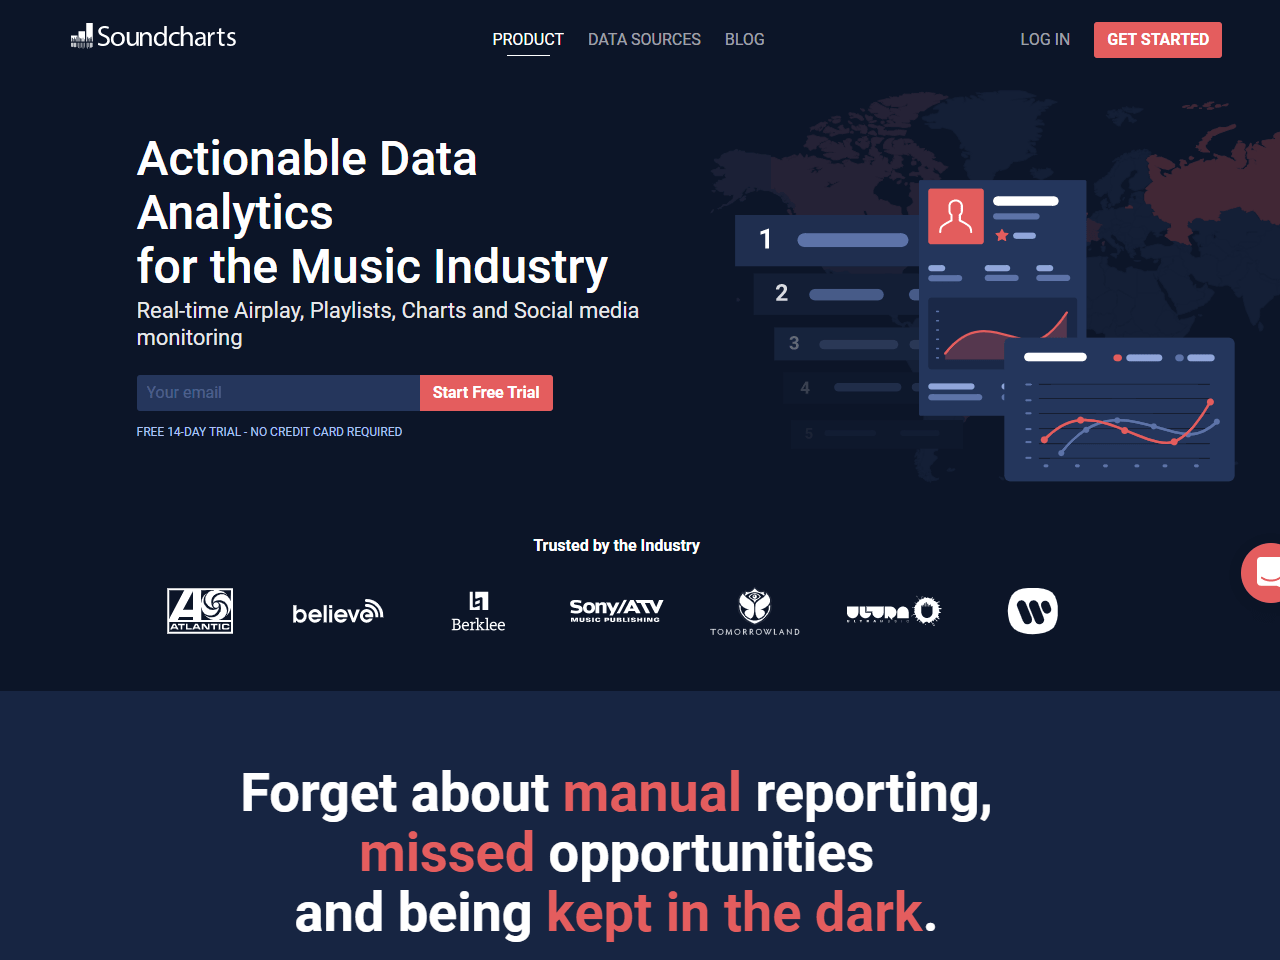 Soundcharts Music Analytics Tool Analyze All the Music Industry Data